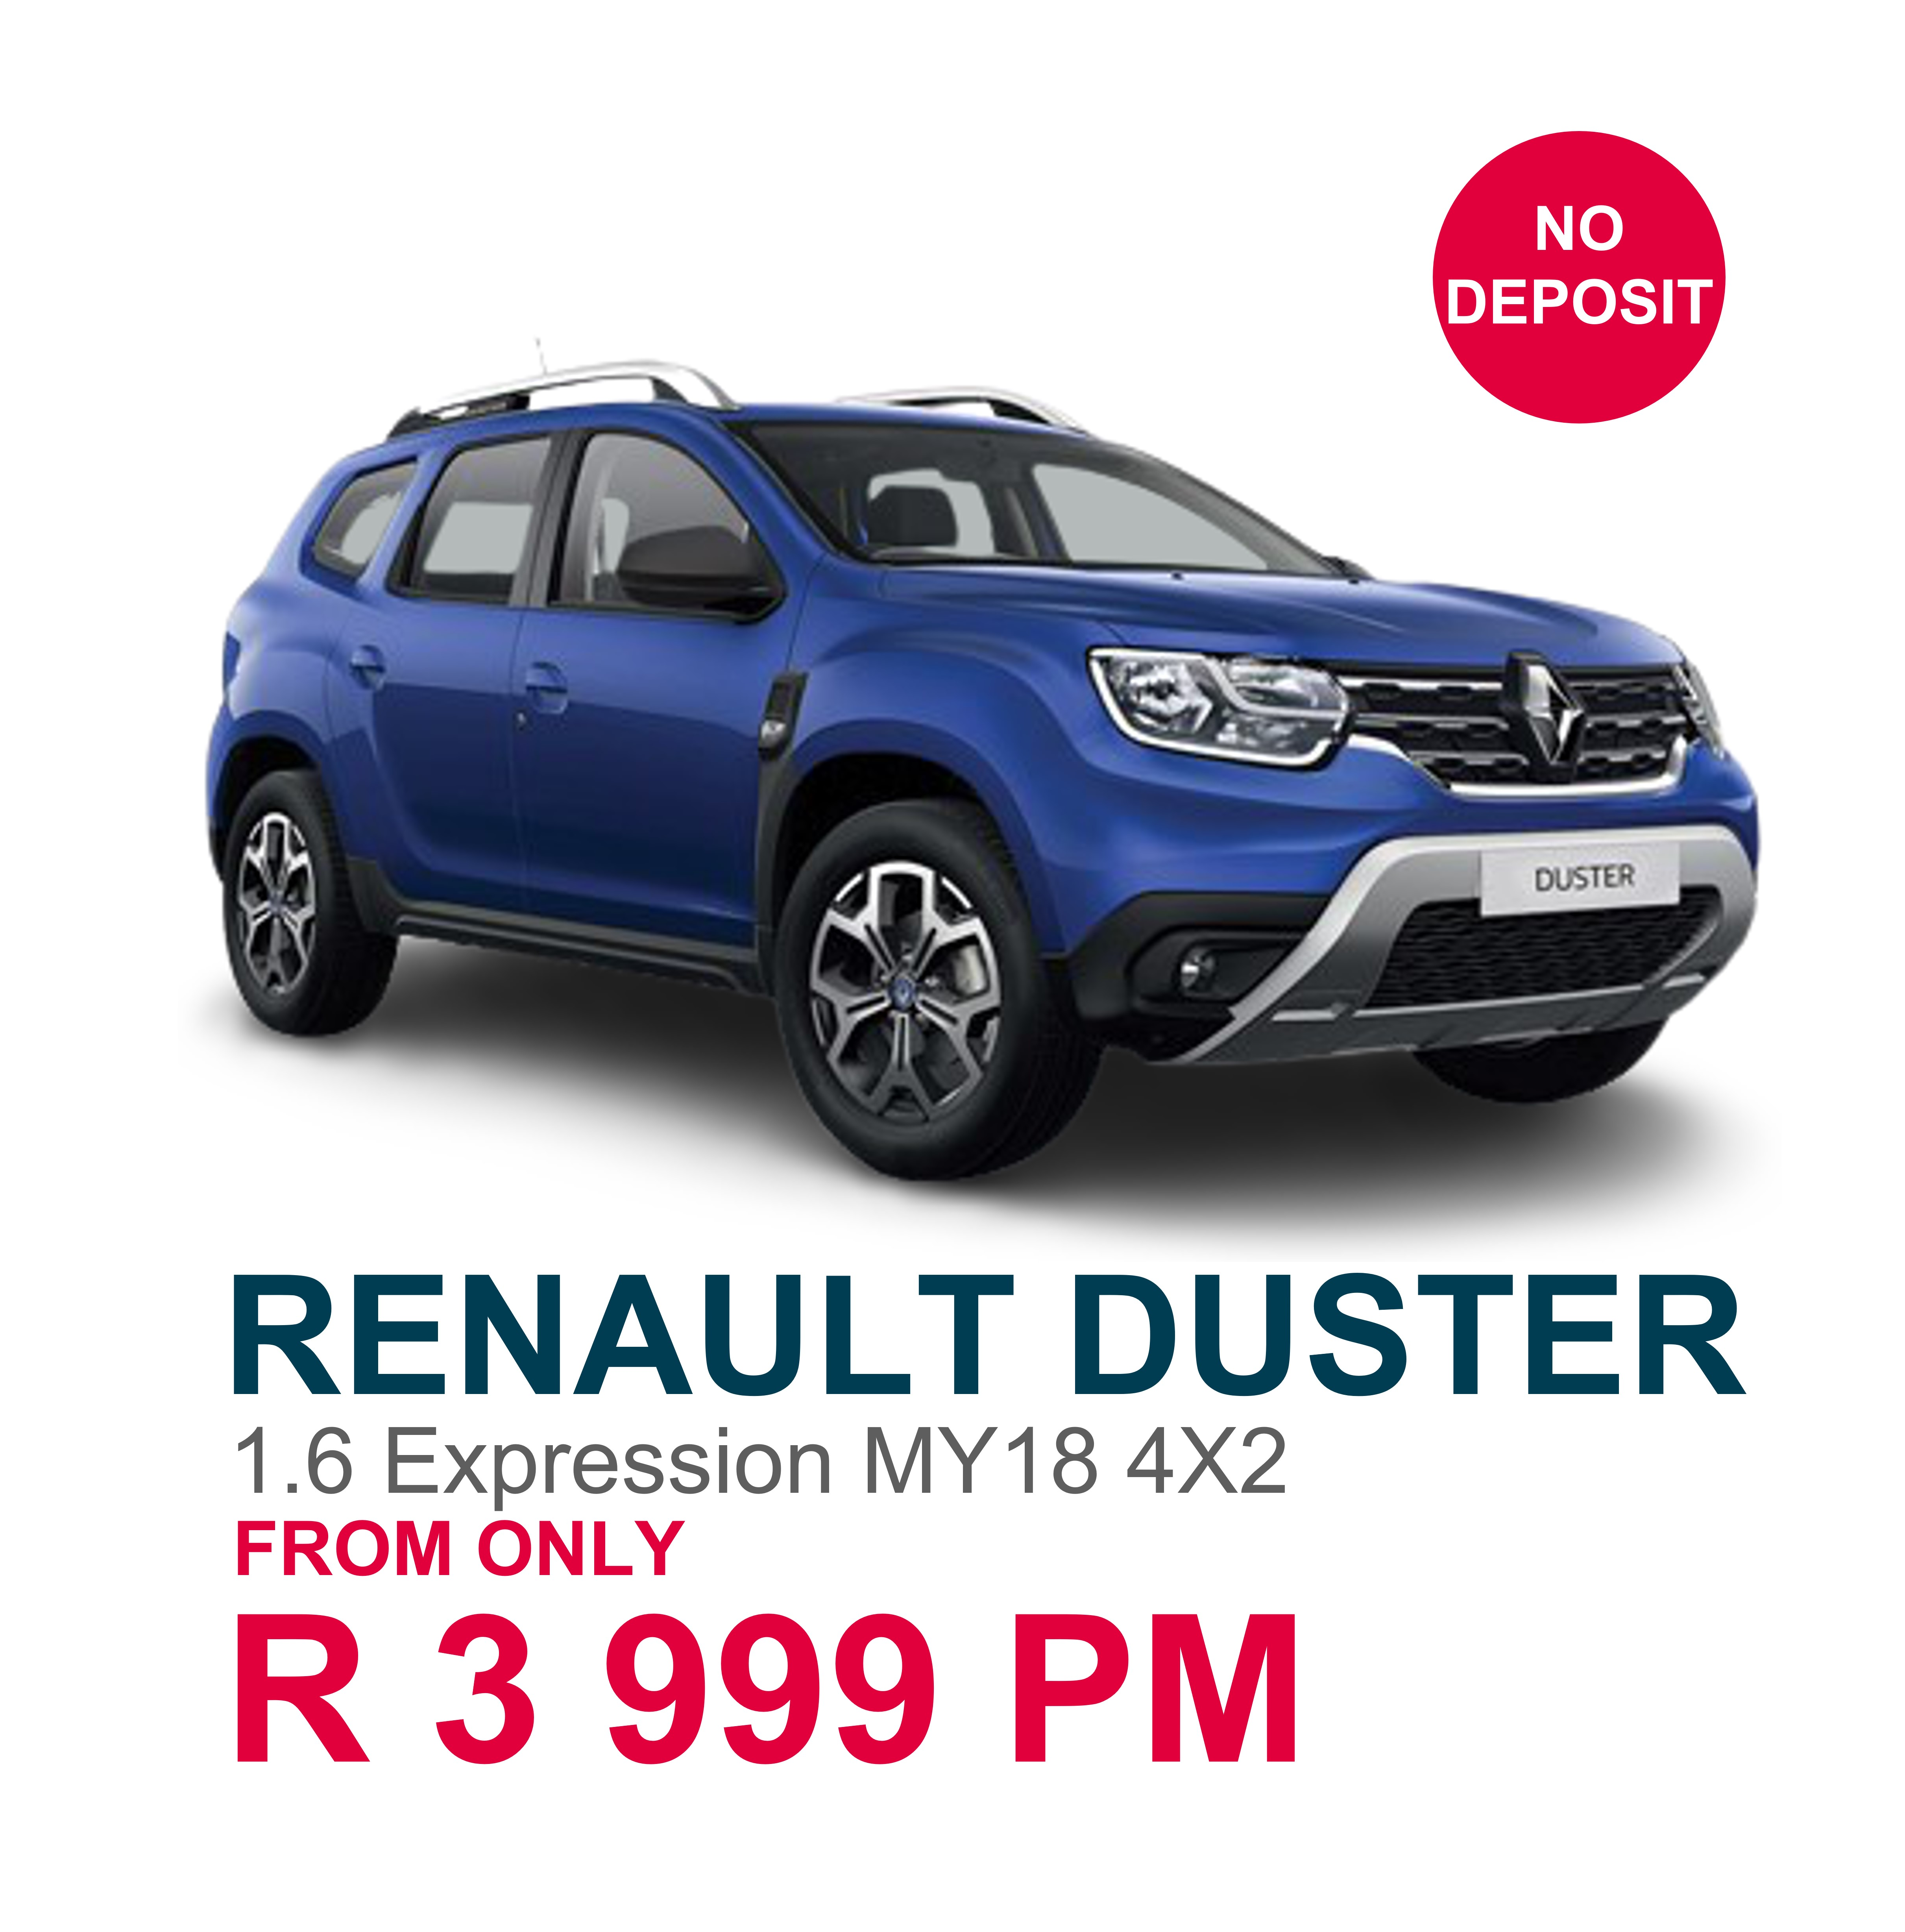 renault-duster-expression-from-only-r3-999pm